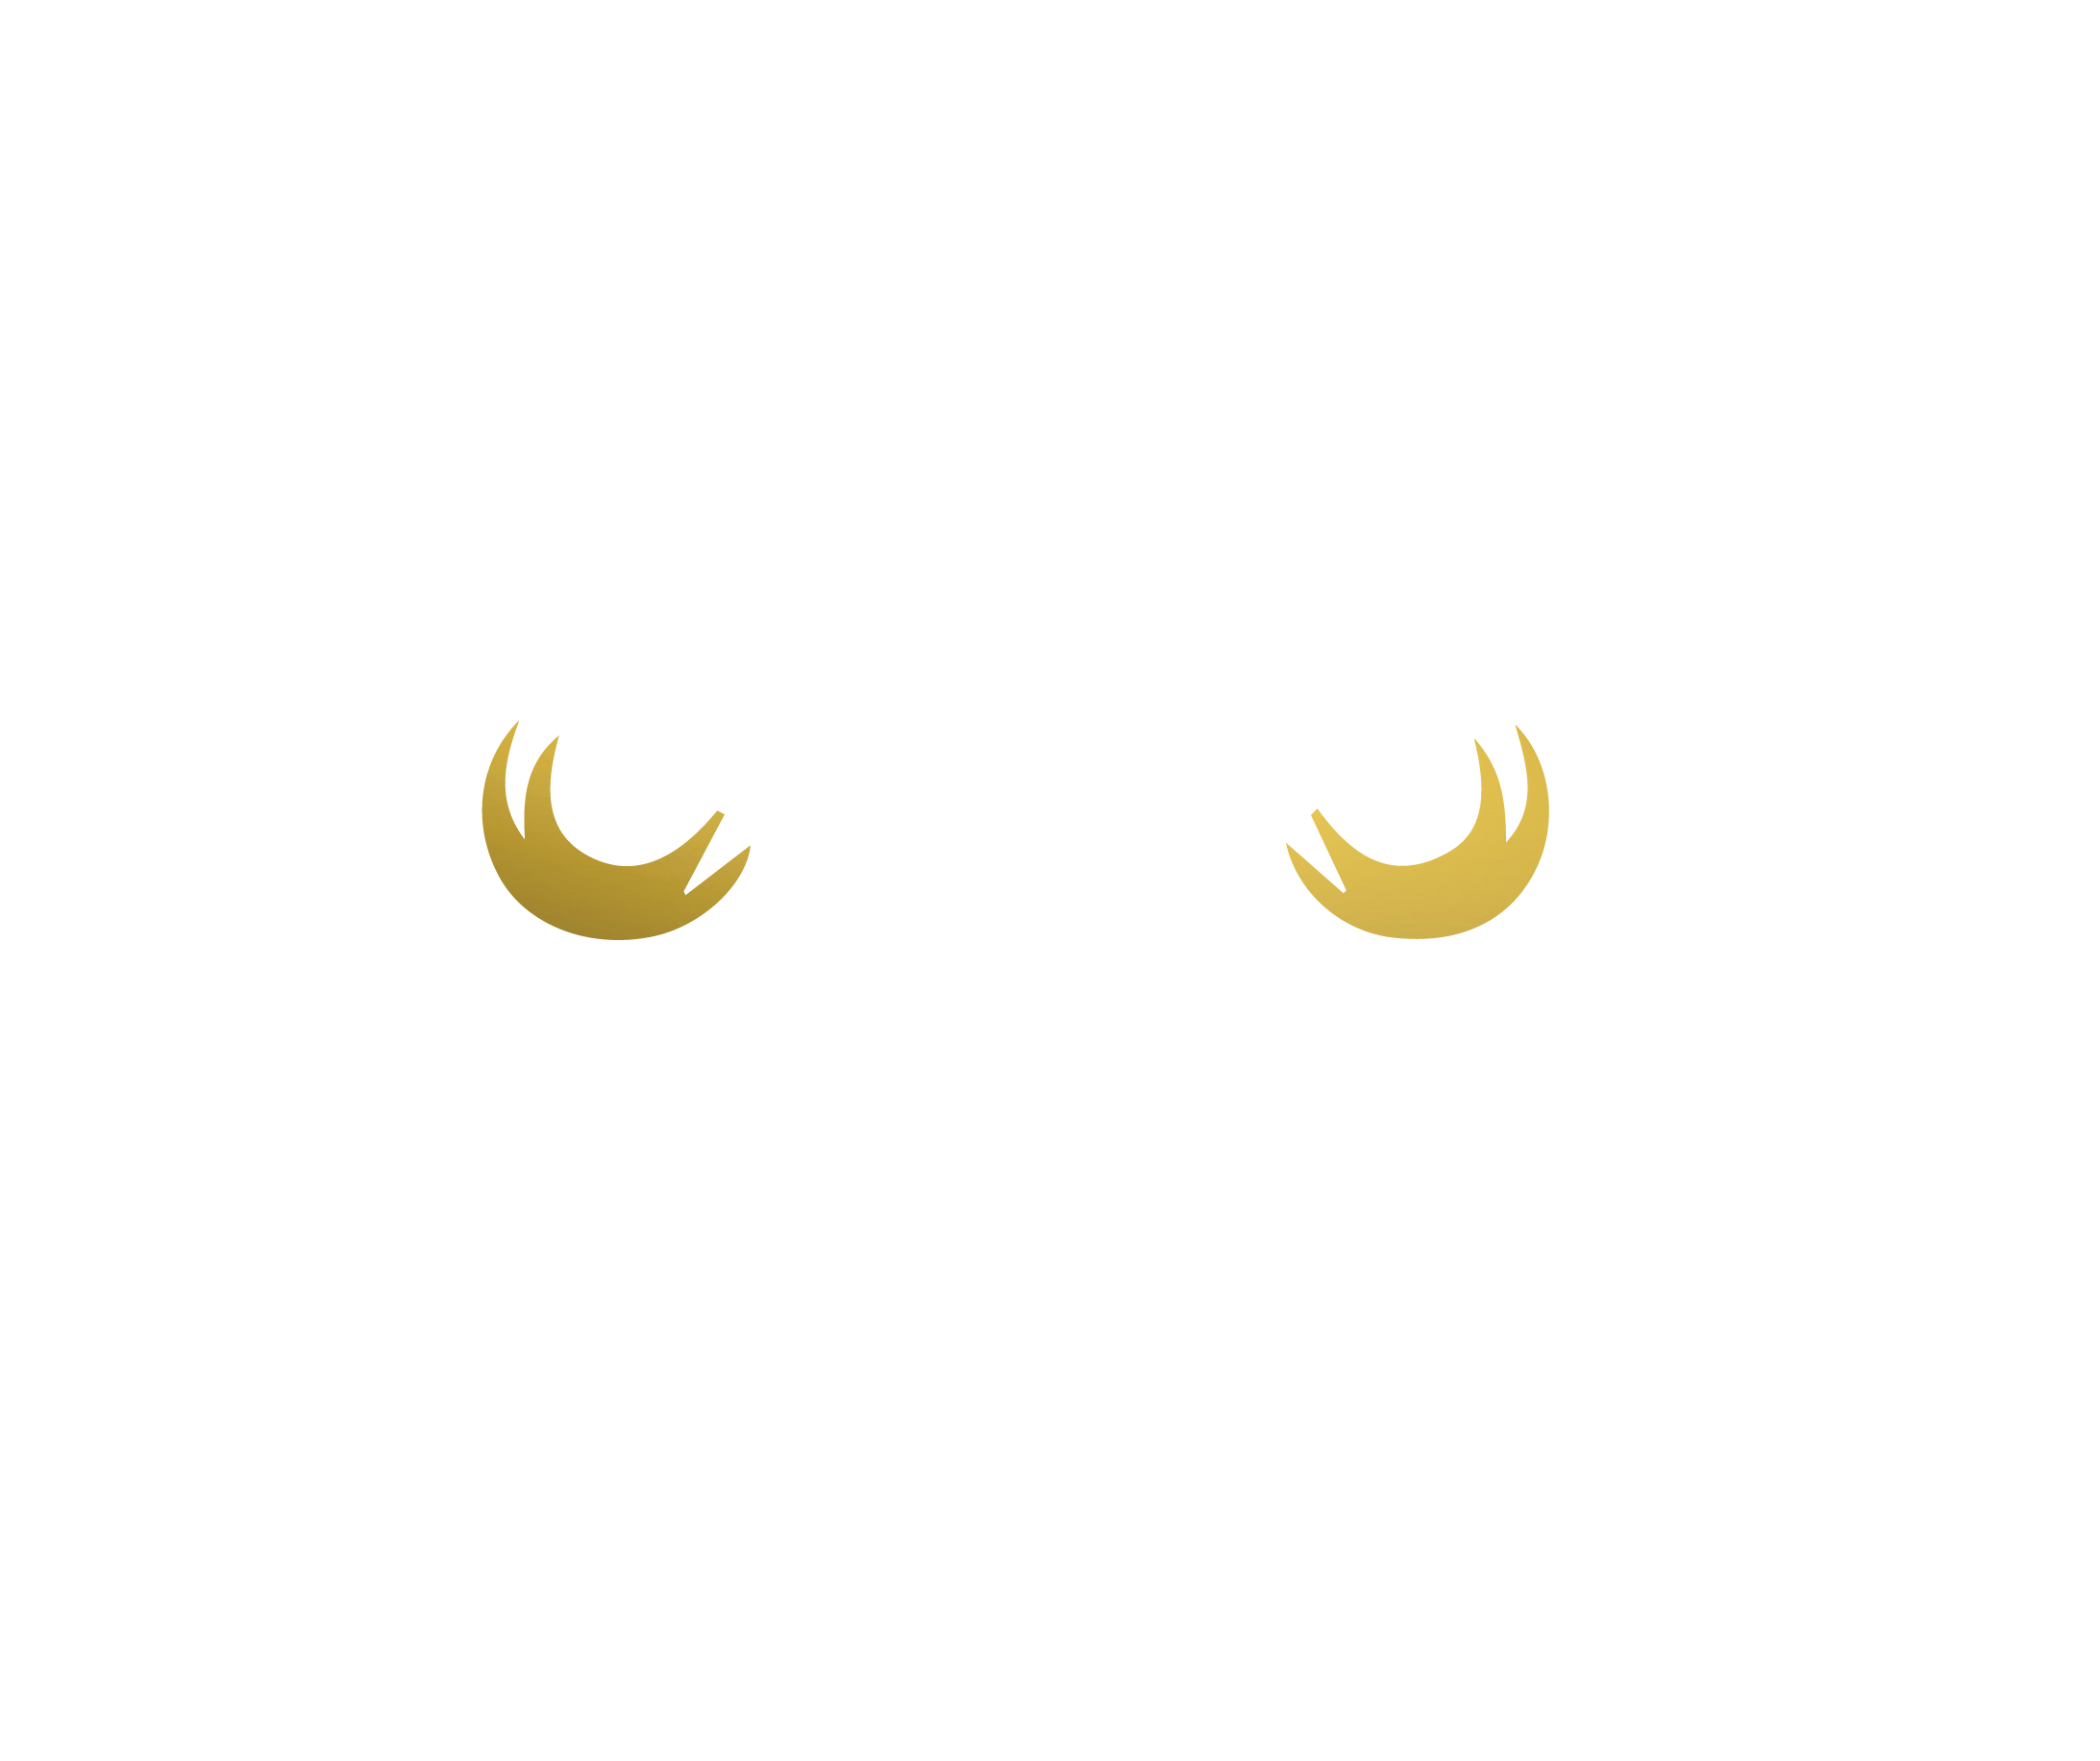 theowl_OWLonly_white.png